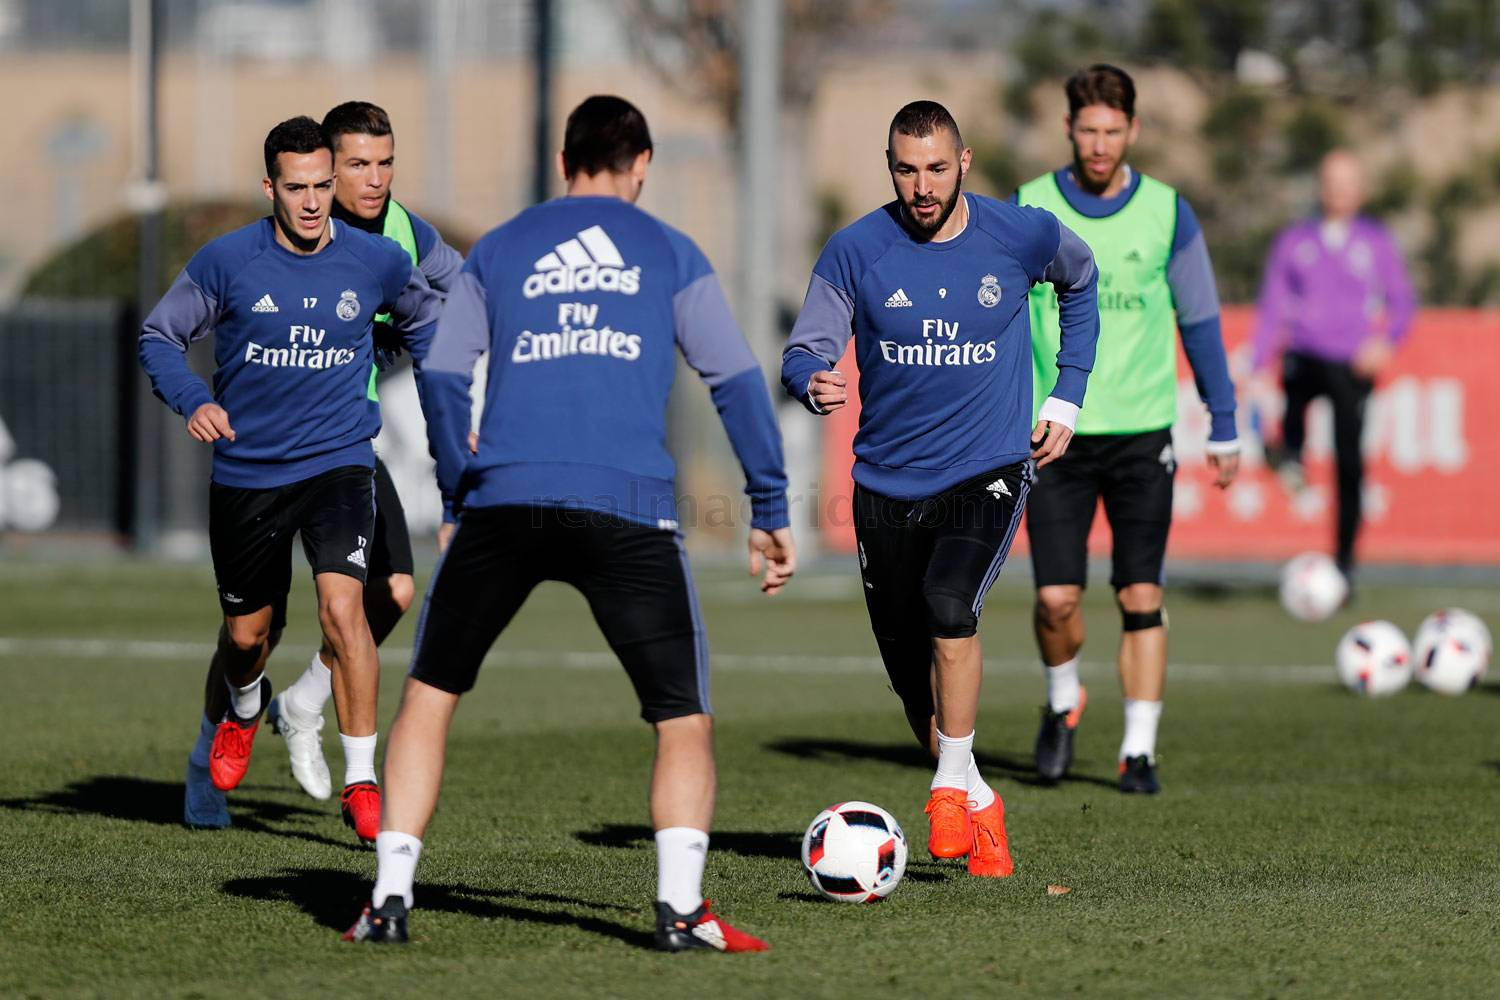 Real Madrid - Entrenamiento del Real Madrid - 11-01-2017